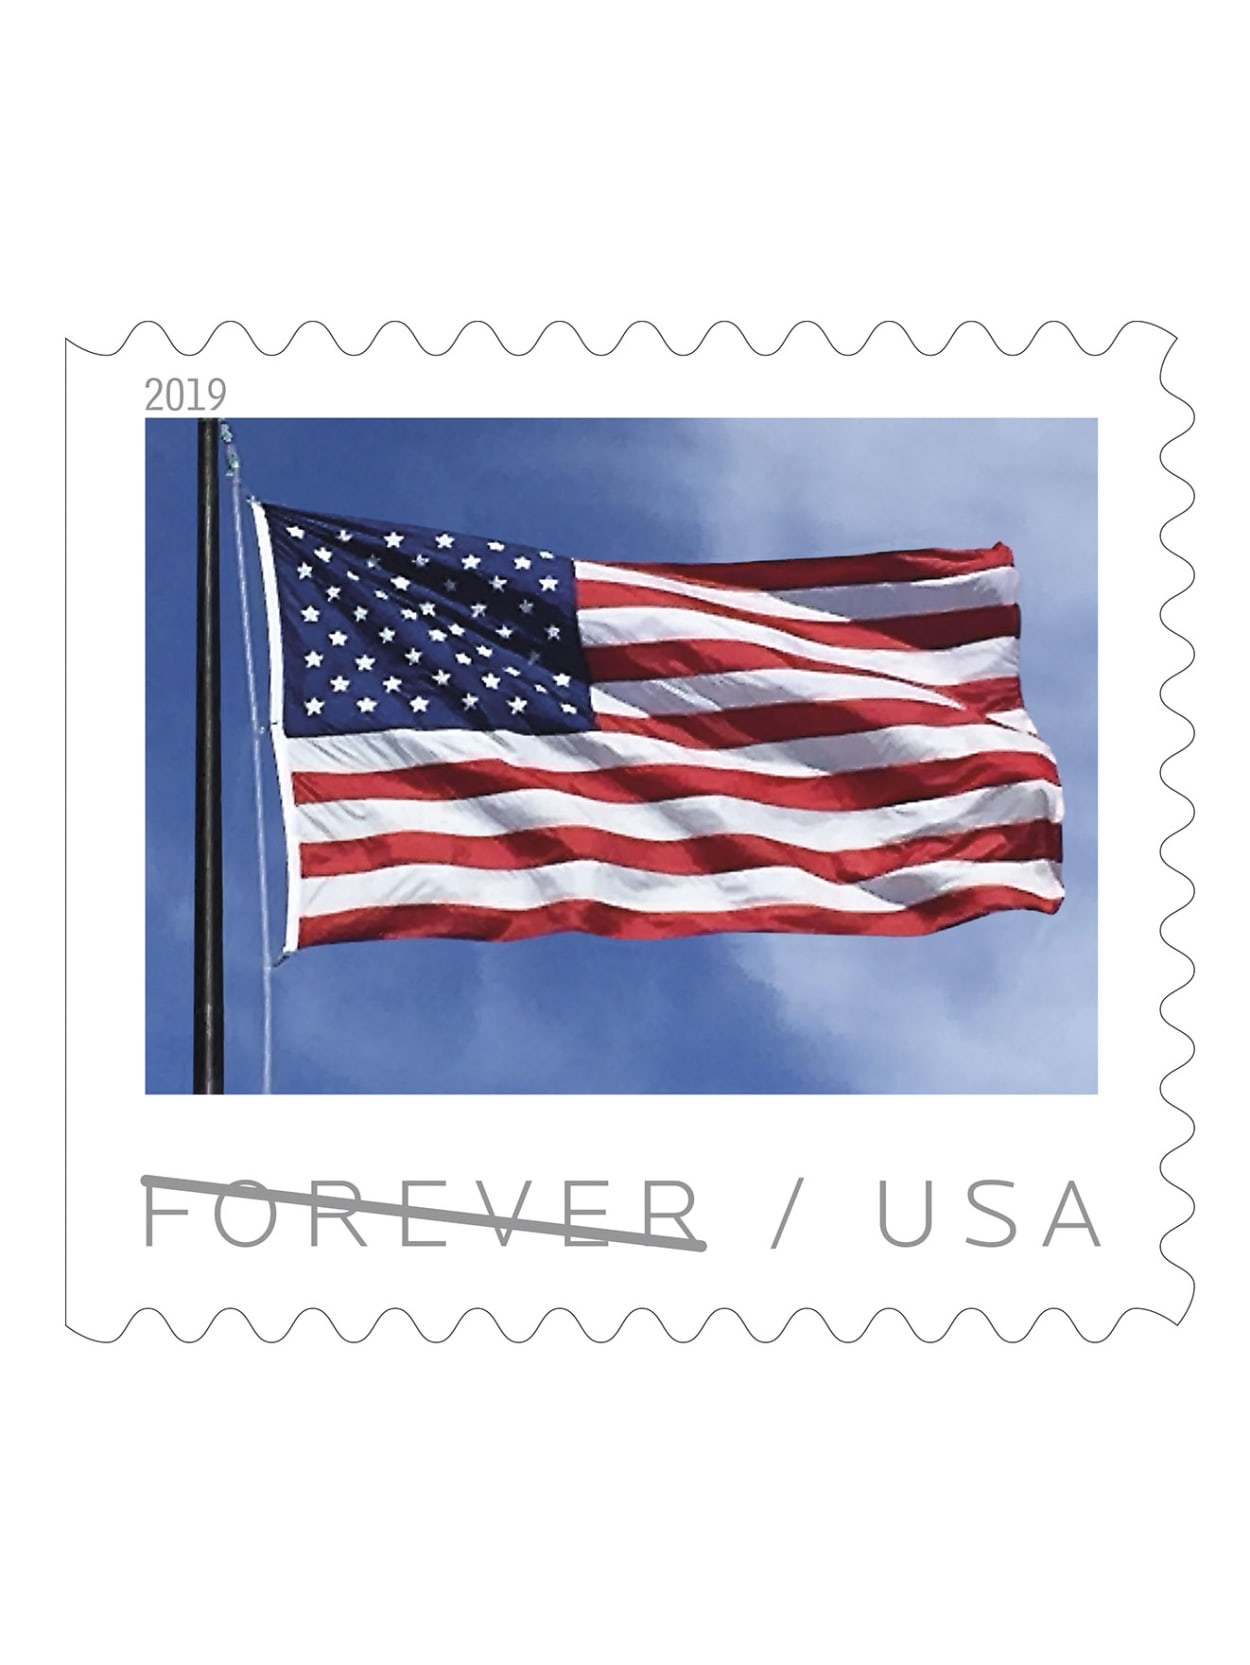 Usps Forever Stamps Booklet Of 20 Stamps Office Depot